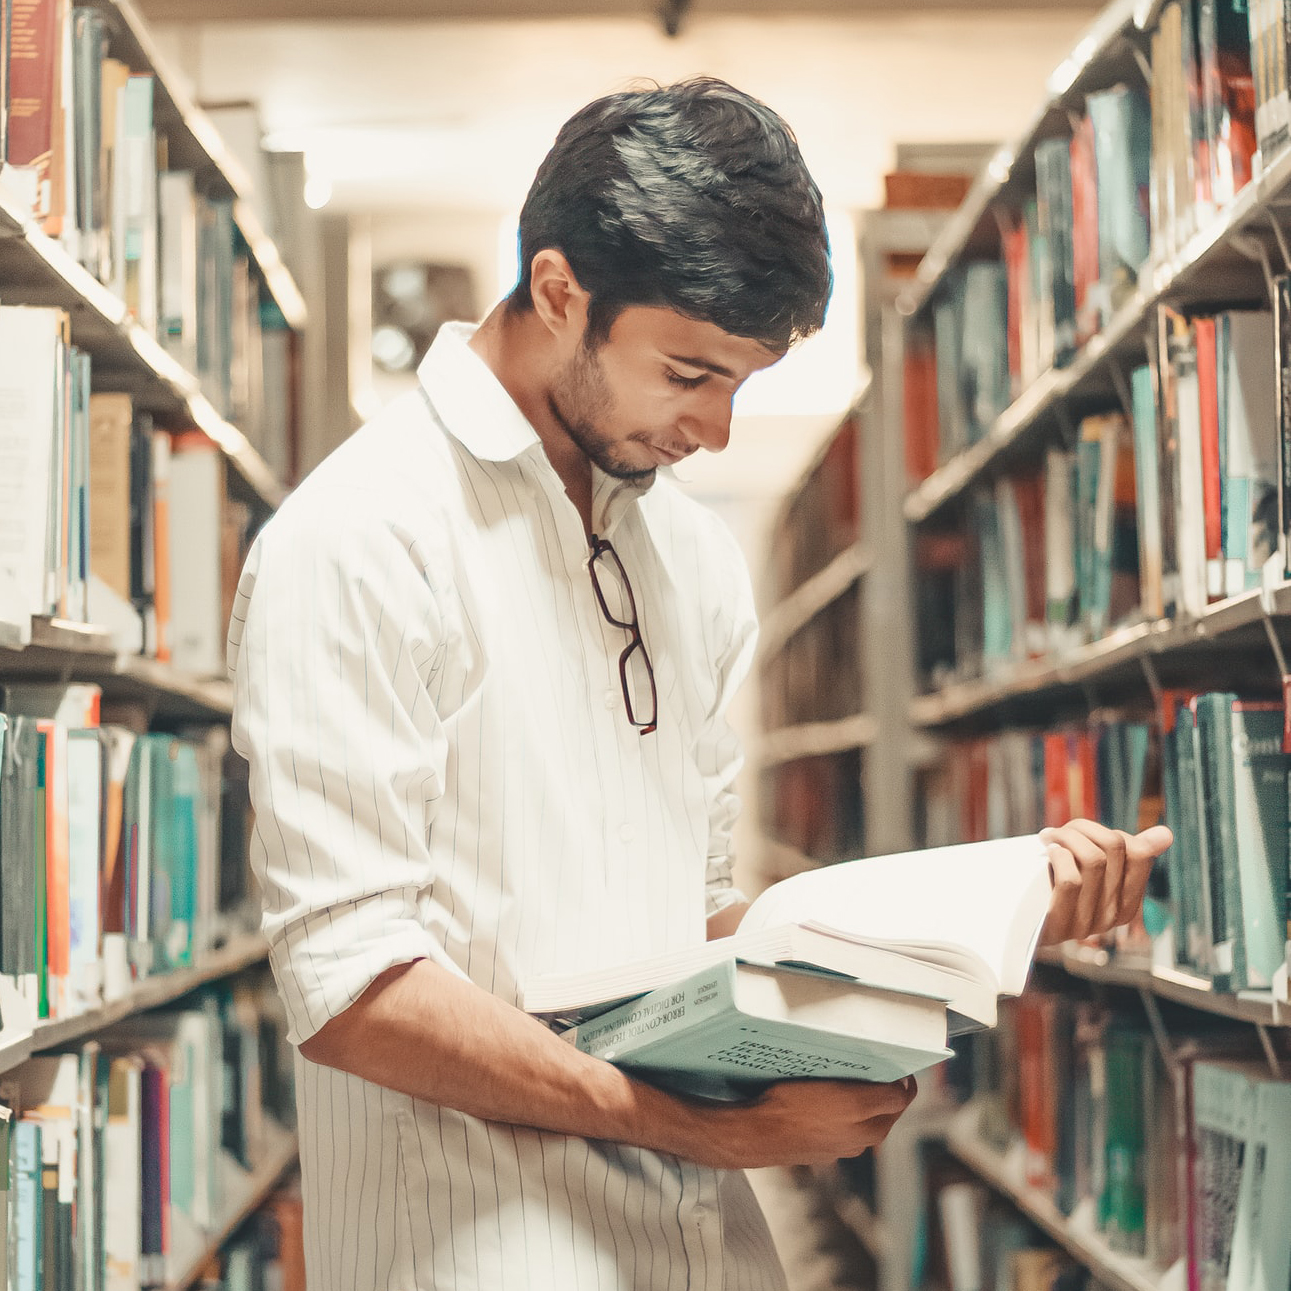 Money Matters at Your Library: Popular Reads on Personal Finance